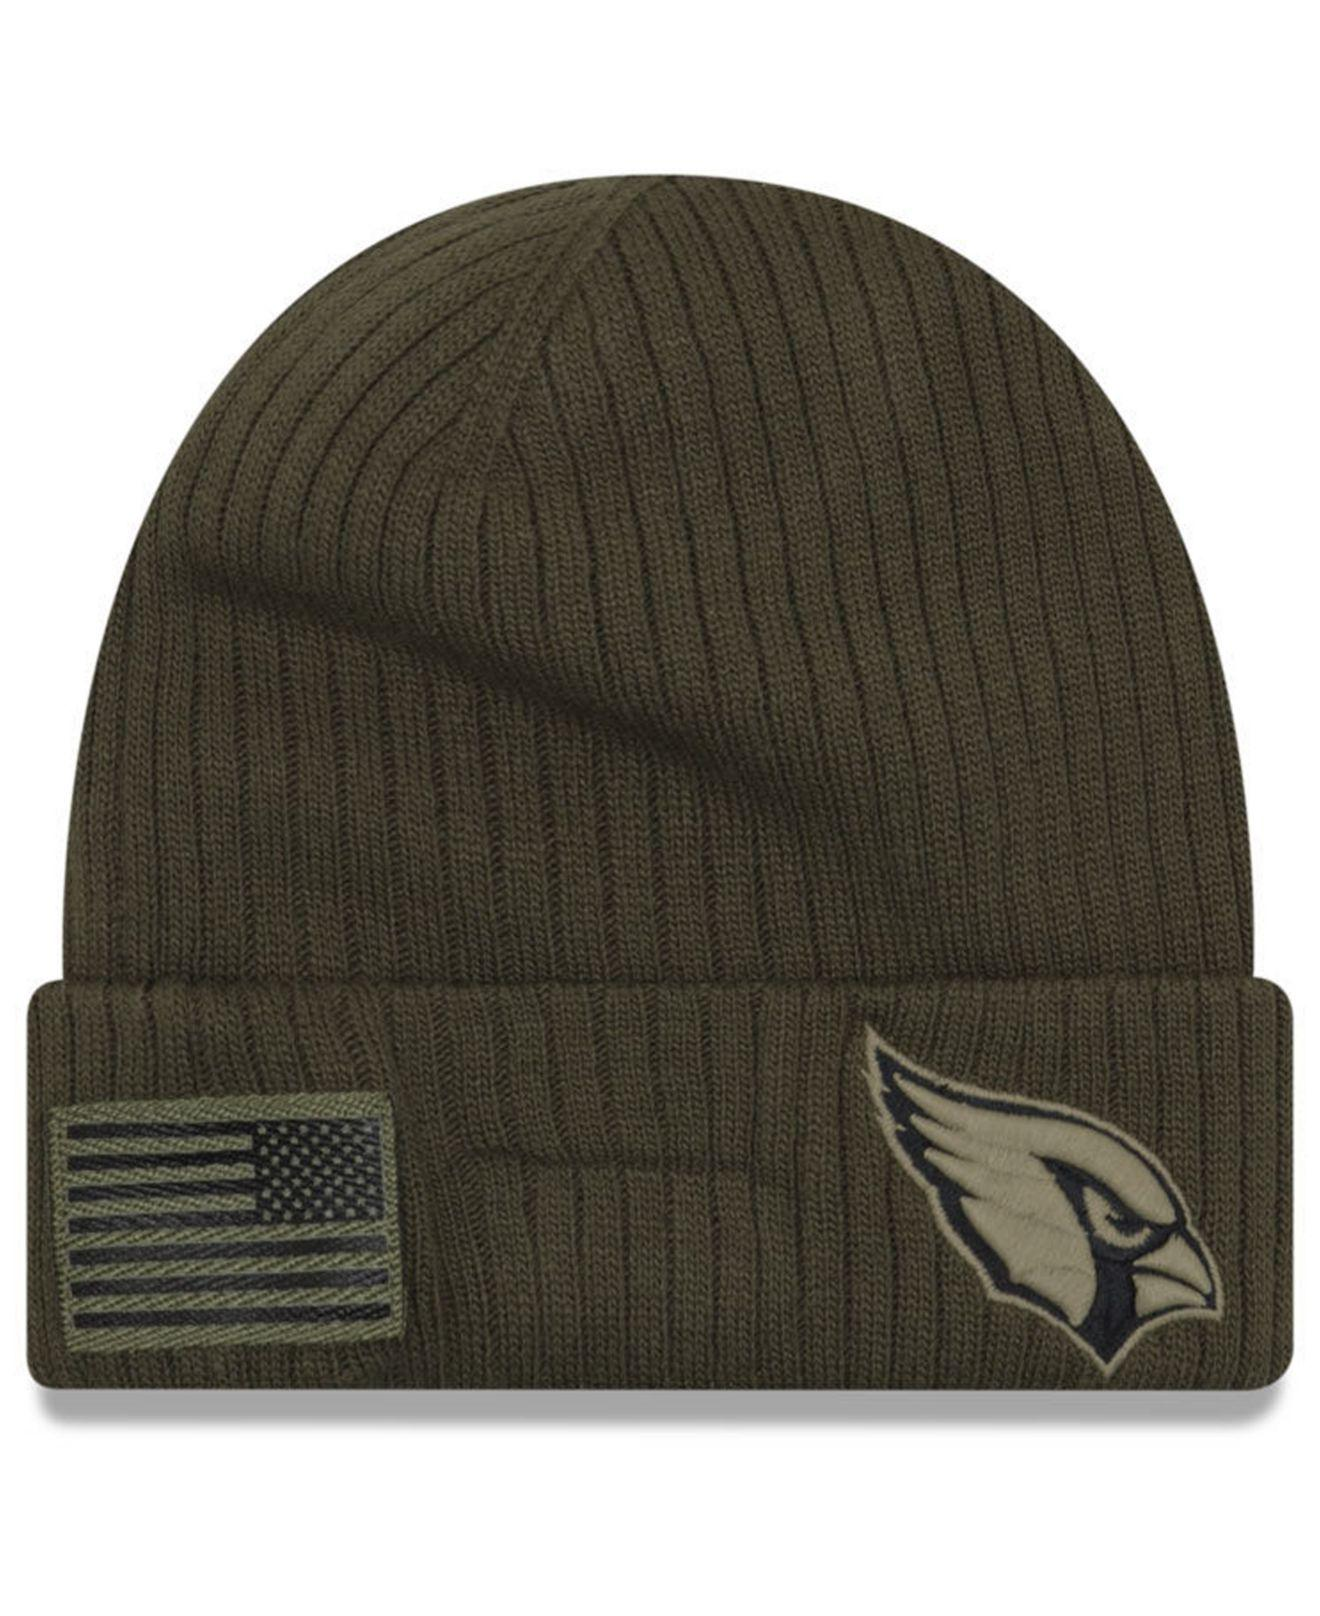 Lyst - Ktz Arizona Cardinals Salute To Service Cuff Knit Hat in Green for  Men cc6cf14e0